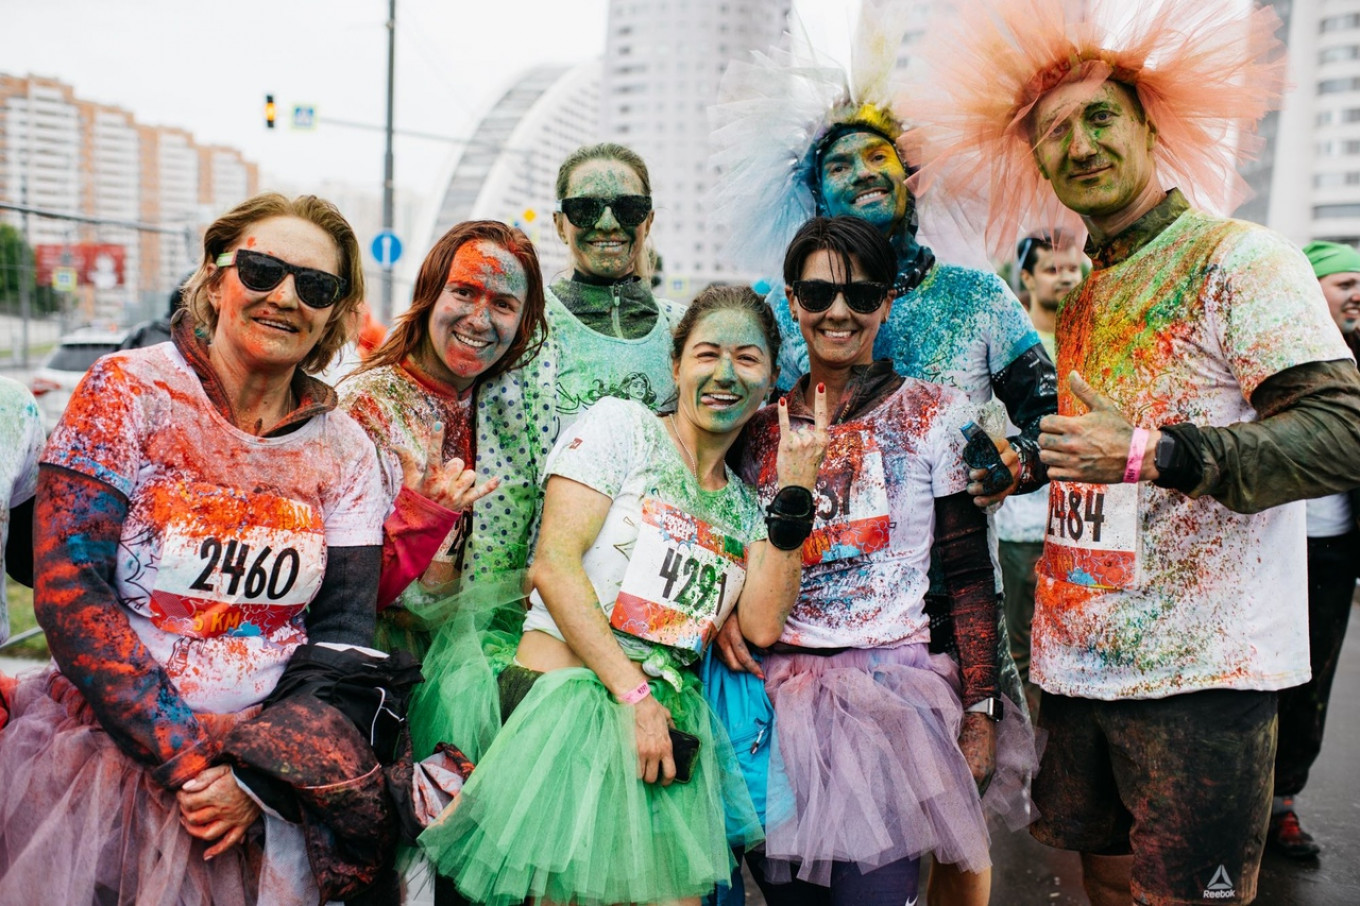 Run in technicolor, 2018				 				Courtesy of Running Community